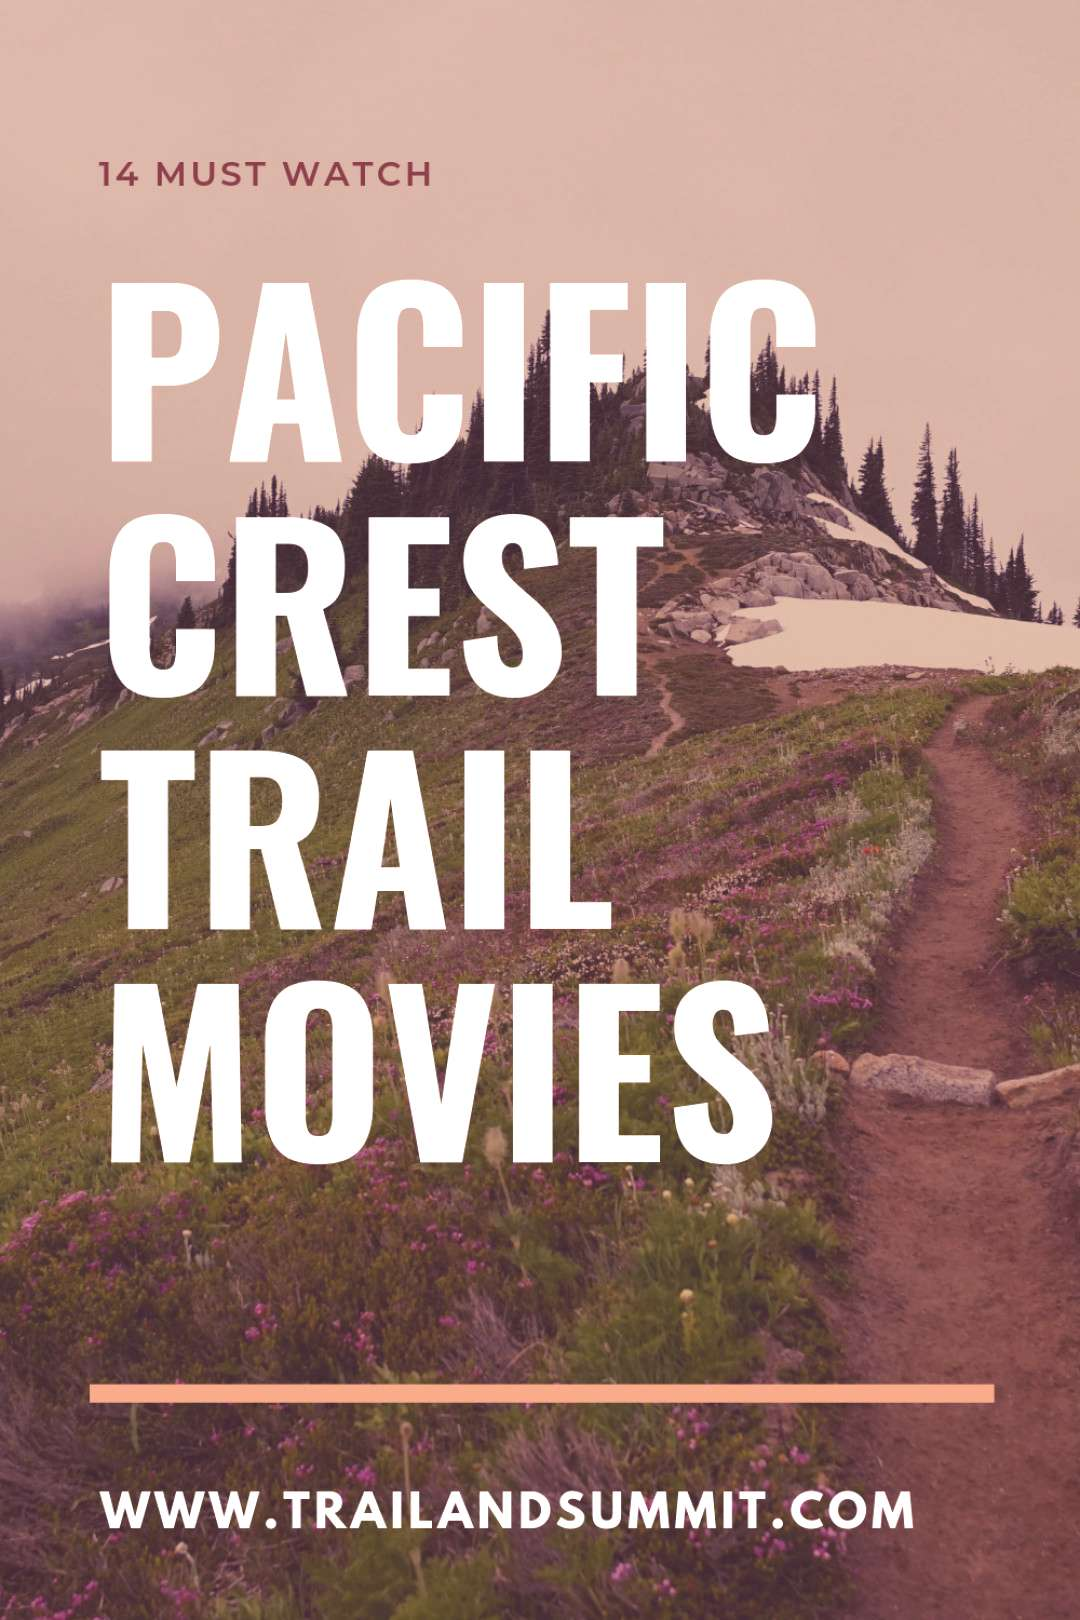 As the longest hiking and equestrian trail in the United States, Pacific Crest Trail is one of the